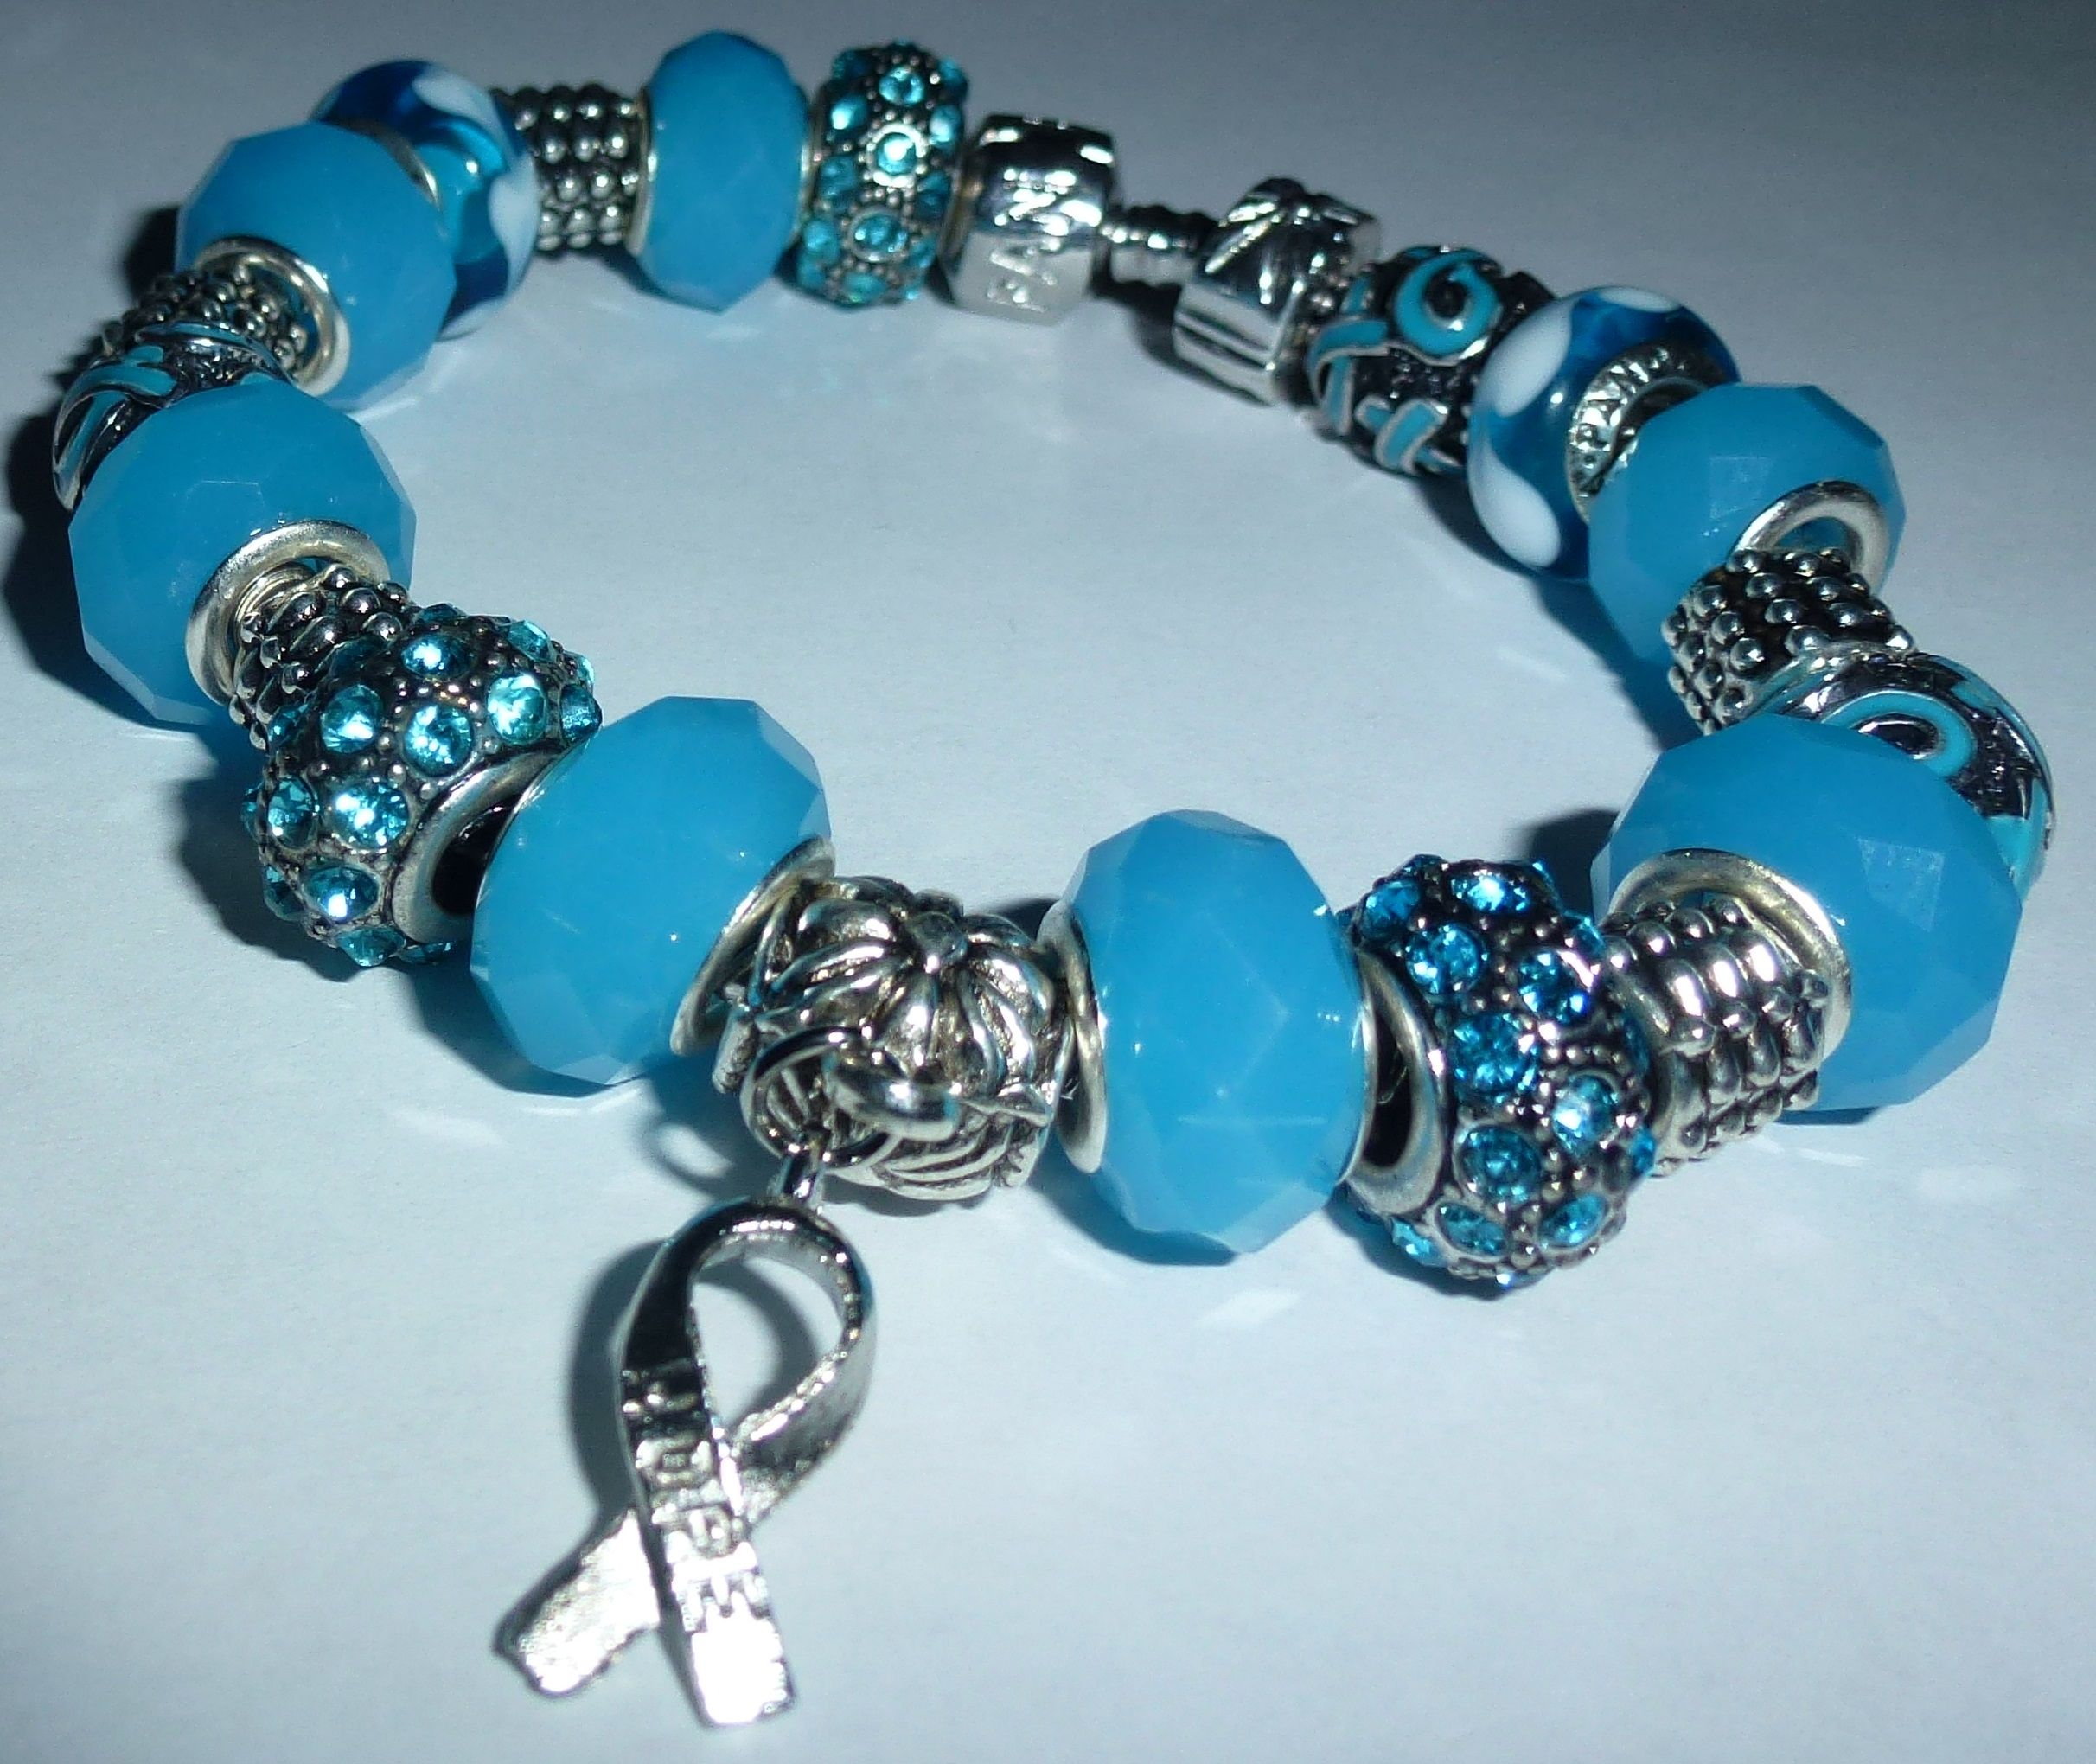 European Bracelet Light Blue Ribbon Prostate Cancer Trisomy 18 Addison S Disease 25 00